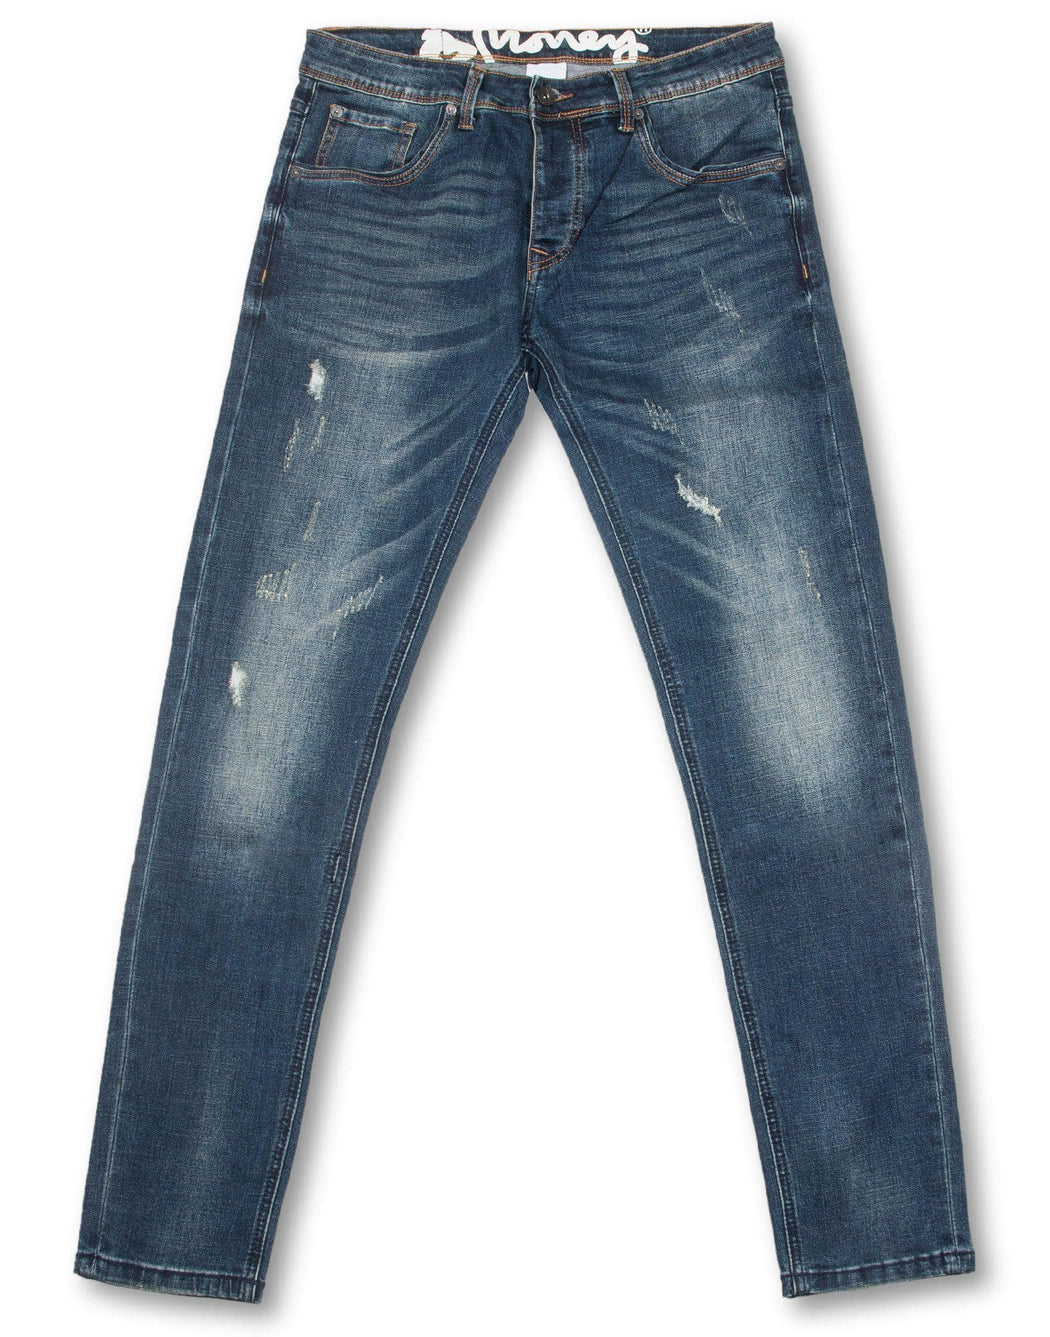 Money Signature Classic fit Jeans